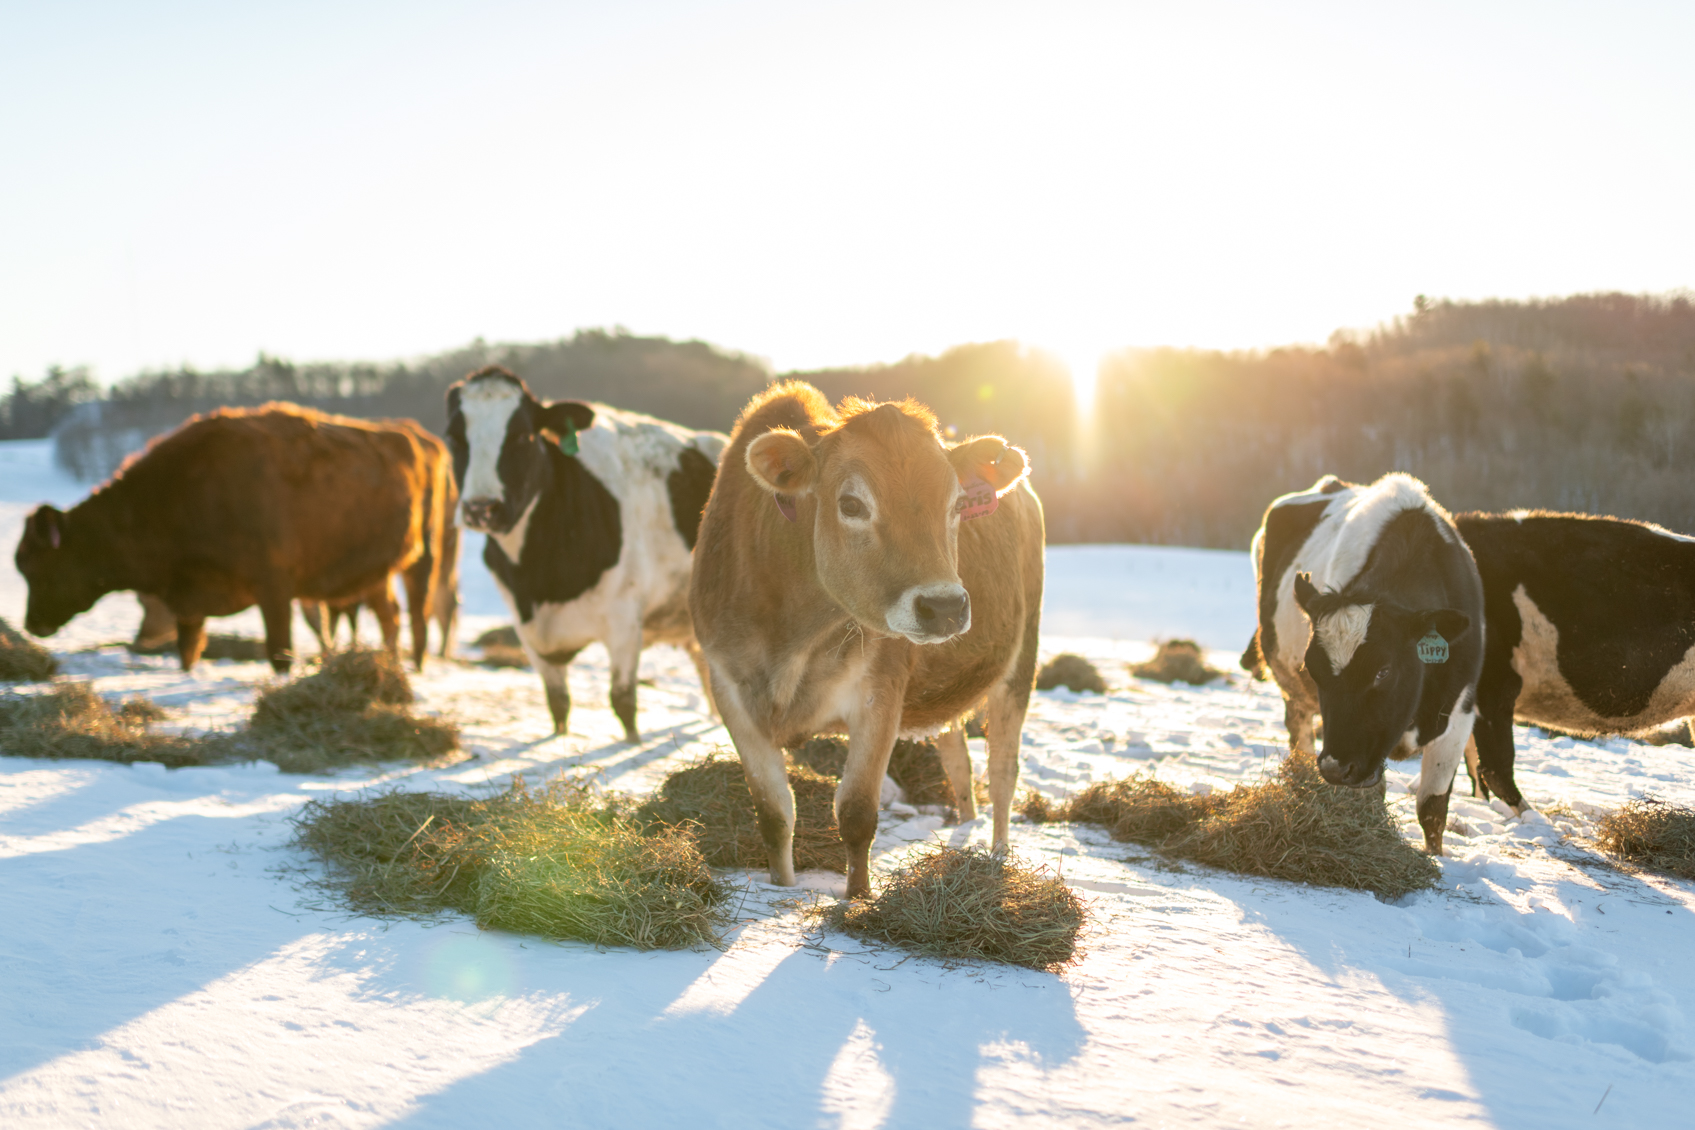 Cows eat piles of dried hay out on a snowy pasture on a sunny day.